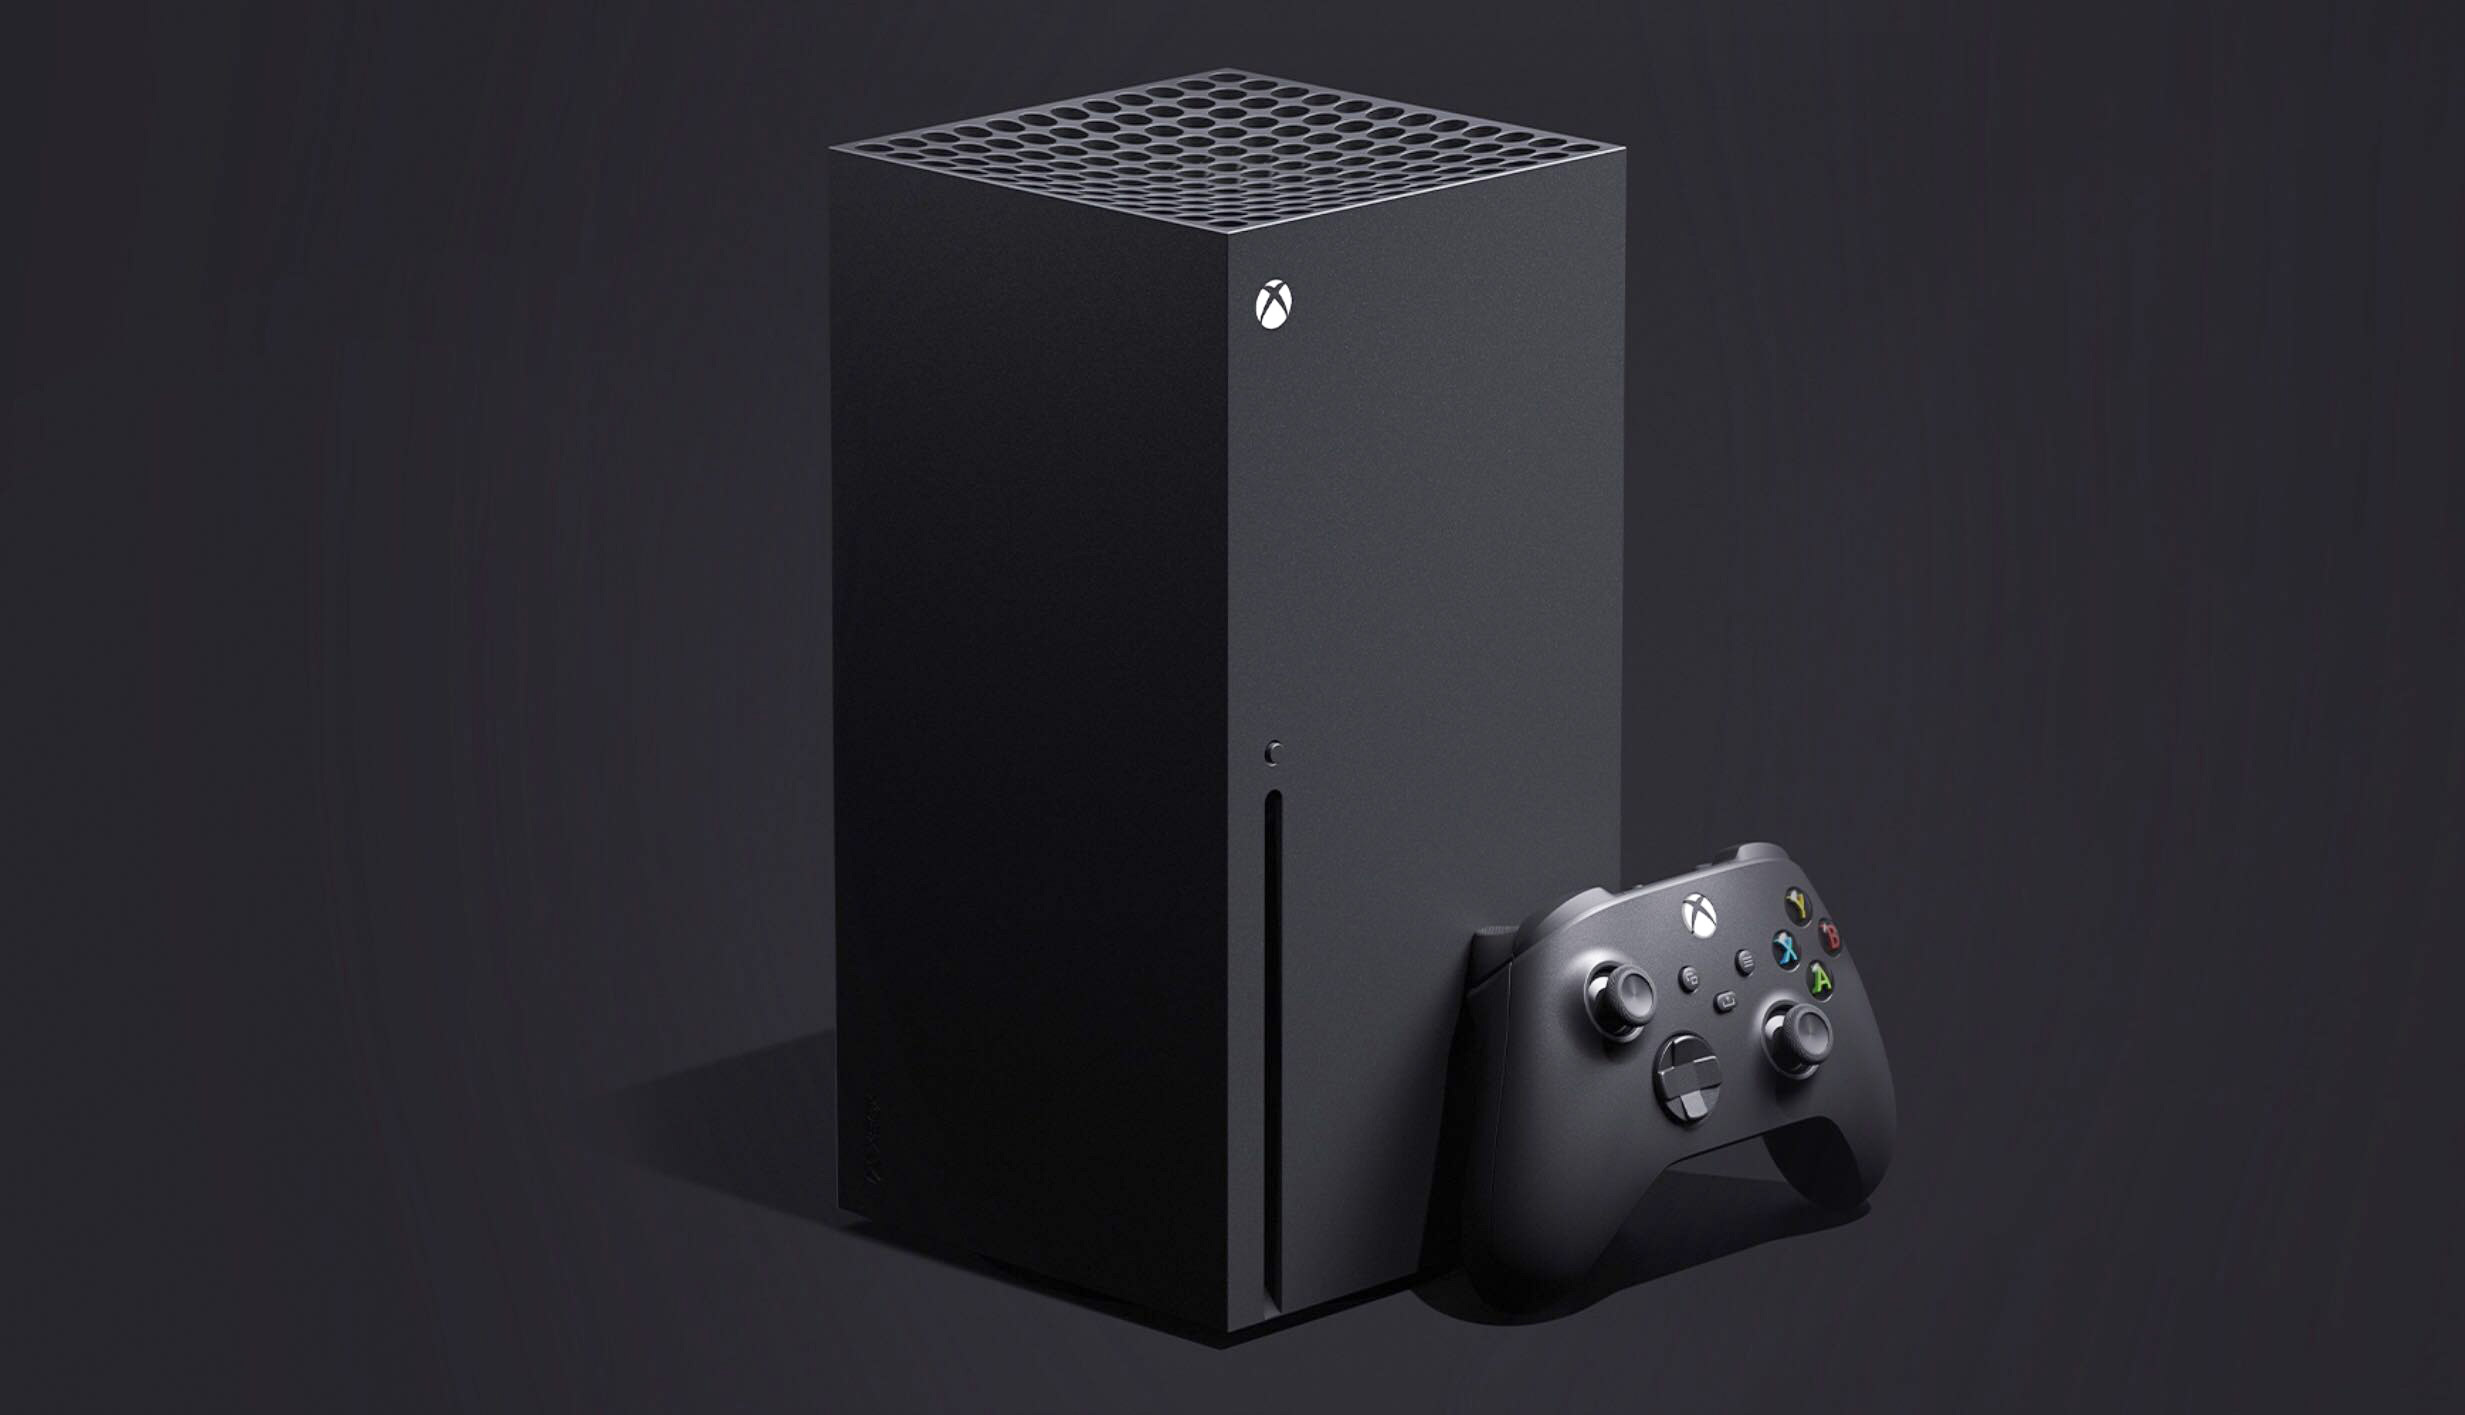 Xbox Series X wishlist: the most wanted specs, features and games